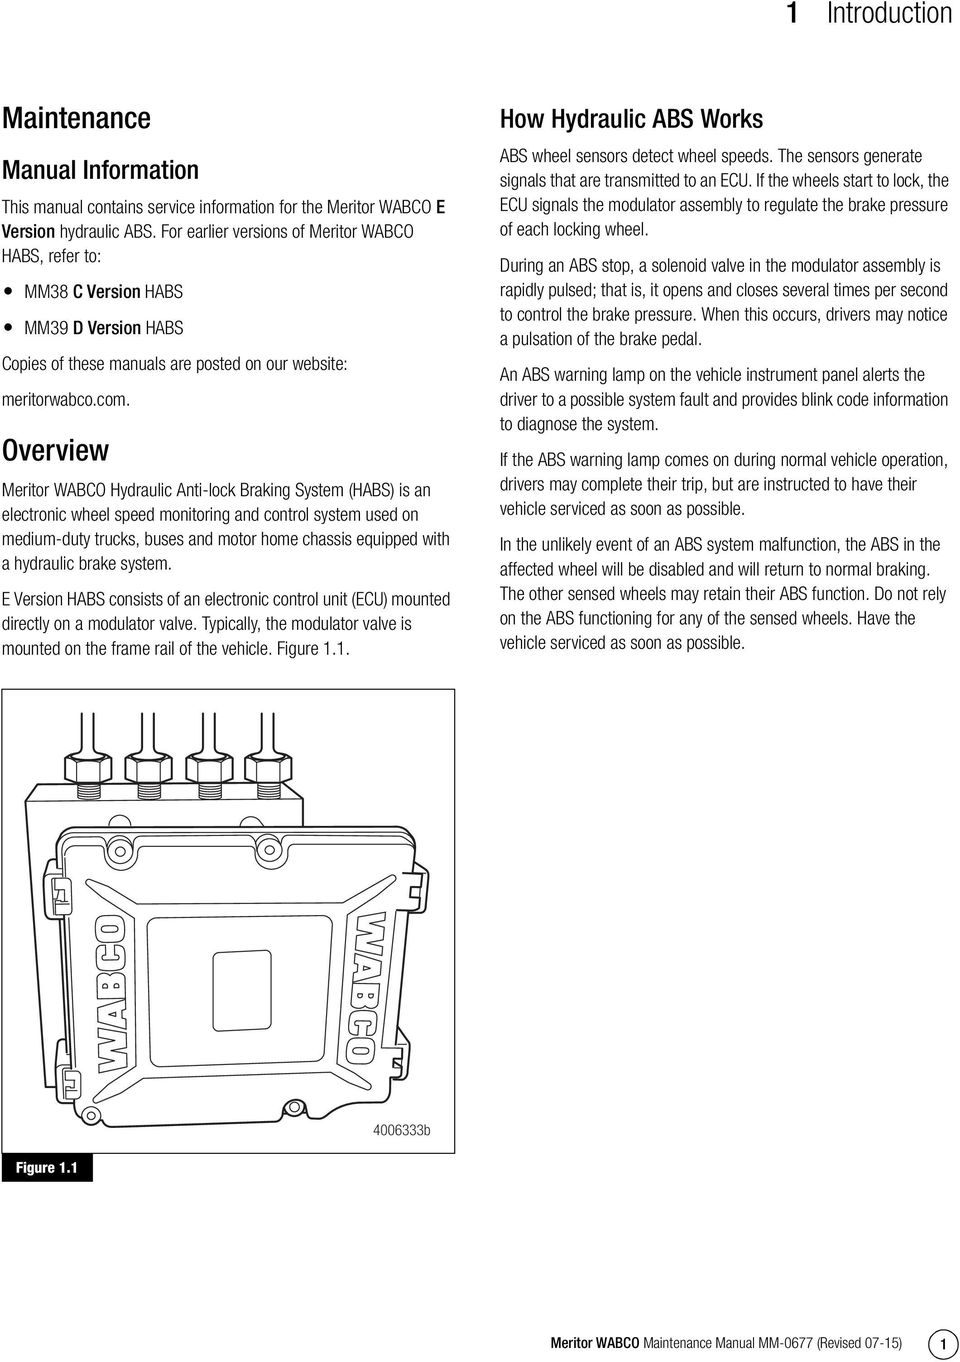 Snap Wiring Diagram For Wabco Abs Image Collections Freightliner Diagrams Trailer Choice Sample And Guide